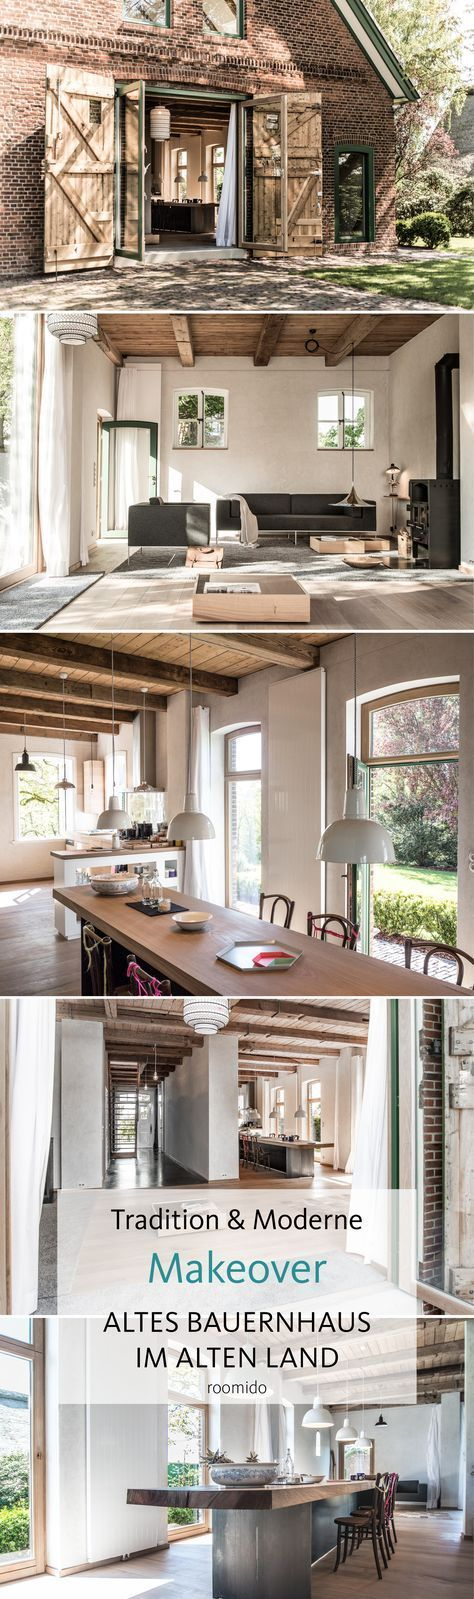 7516 best Wohnideen images on Pinterest Architecture, Homes and Live - wohnideen 30 qm